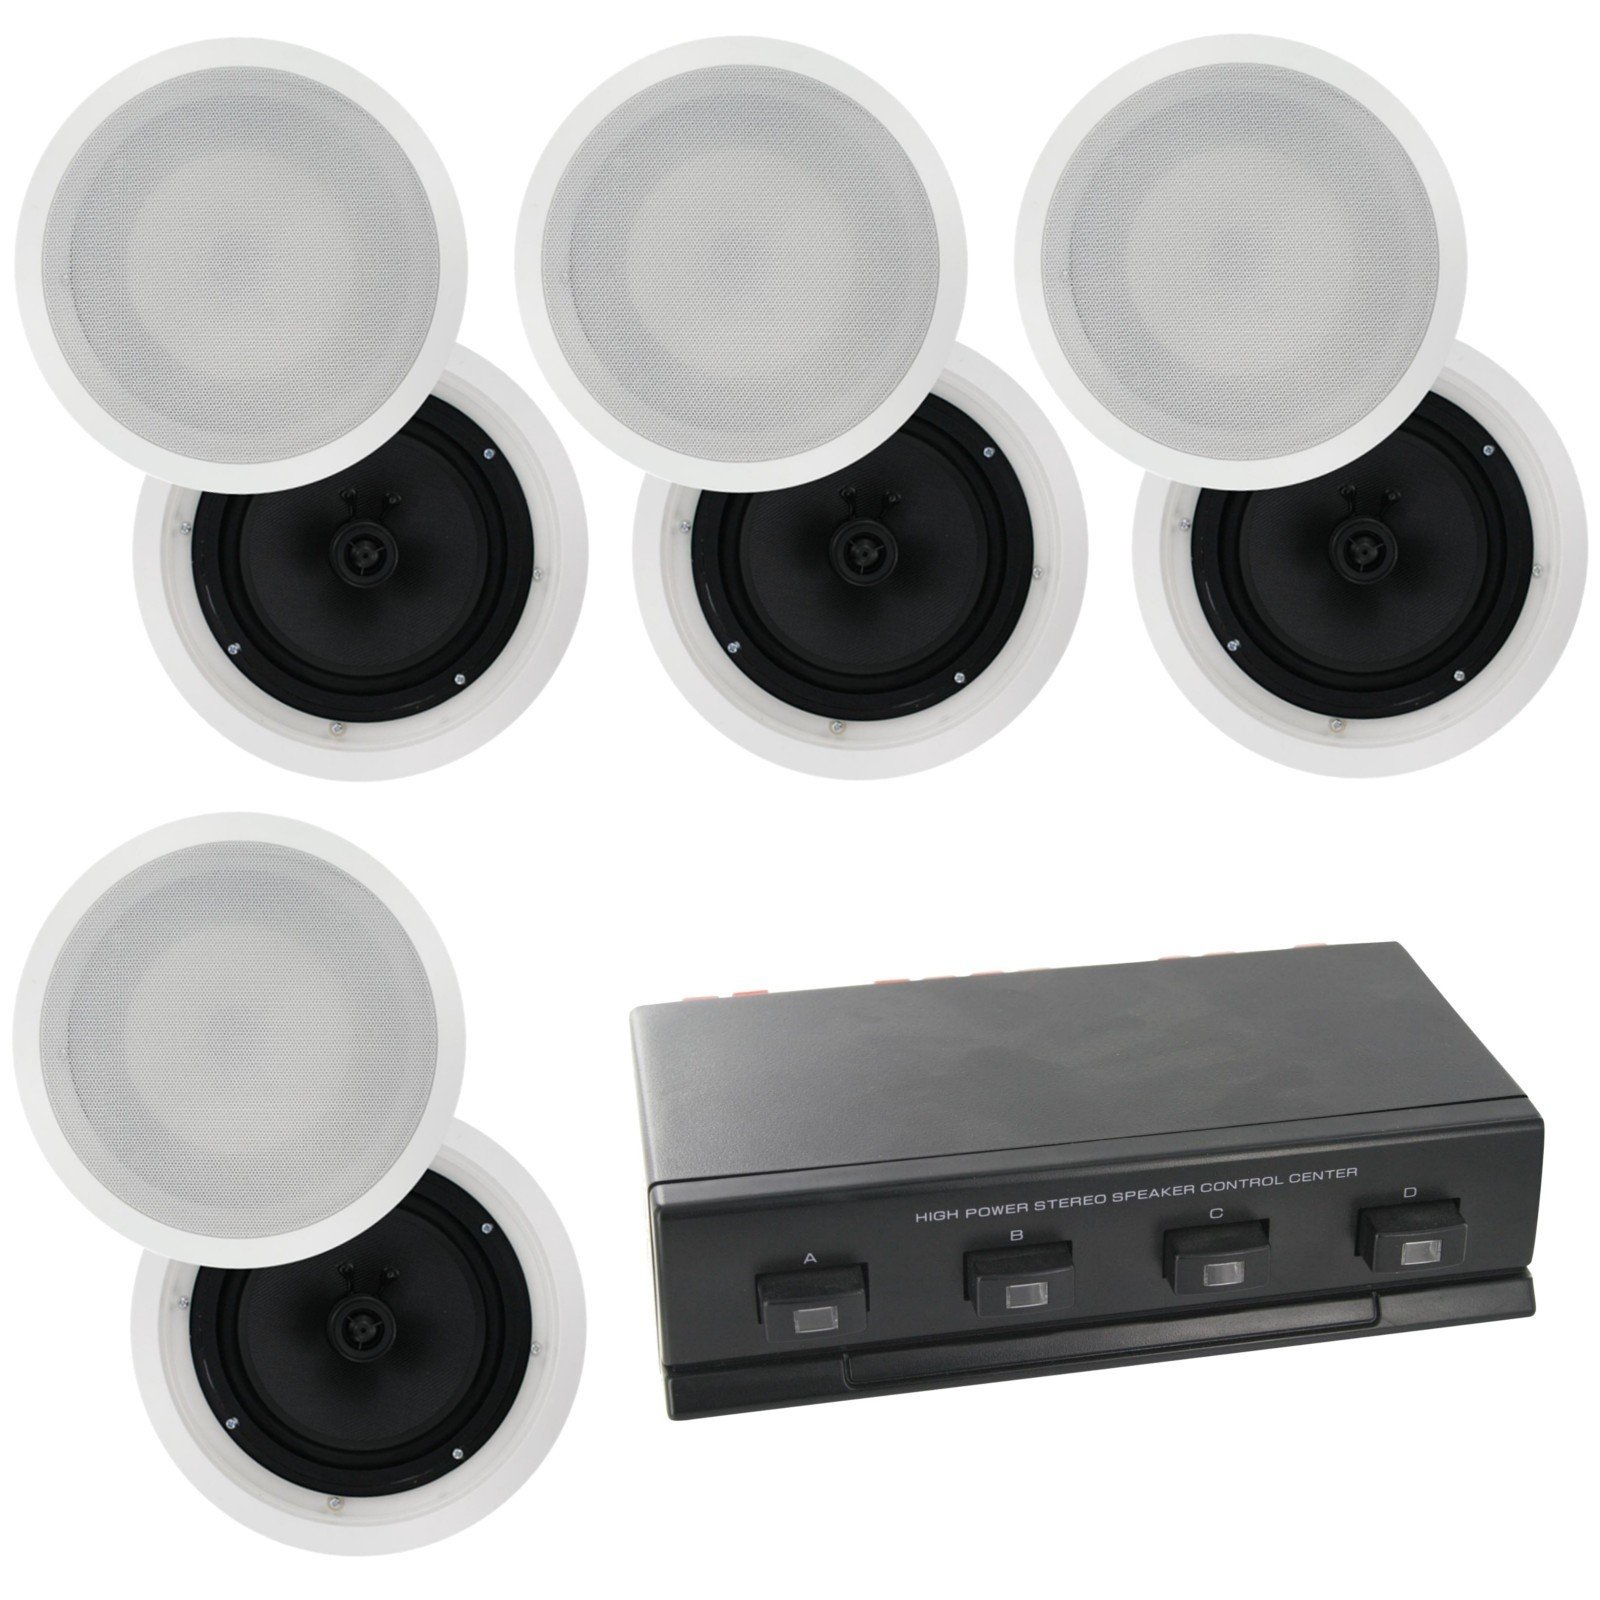 Selby Cs809x4a1006 4 Zone 8 Speaker Pack With 8 Inch In Ceiling Speakers Carbon Cone